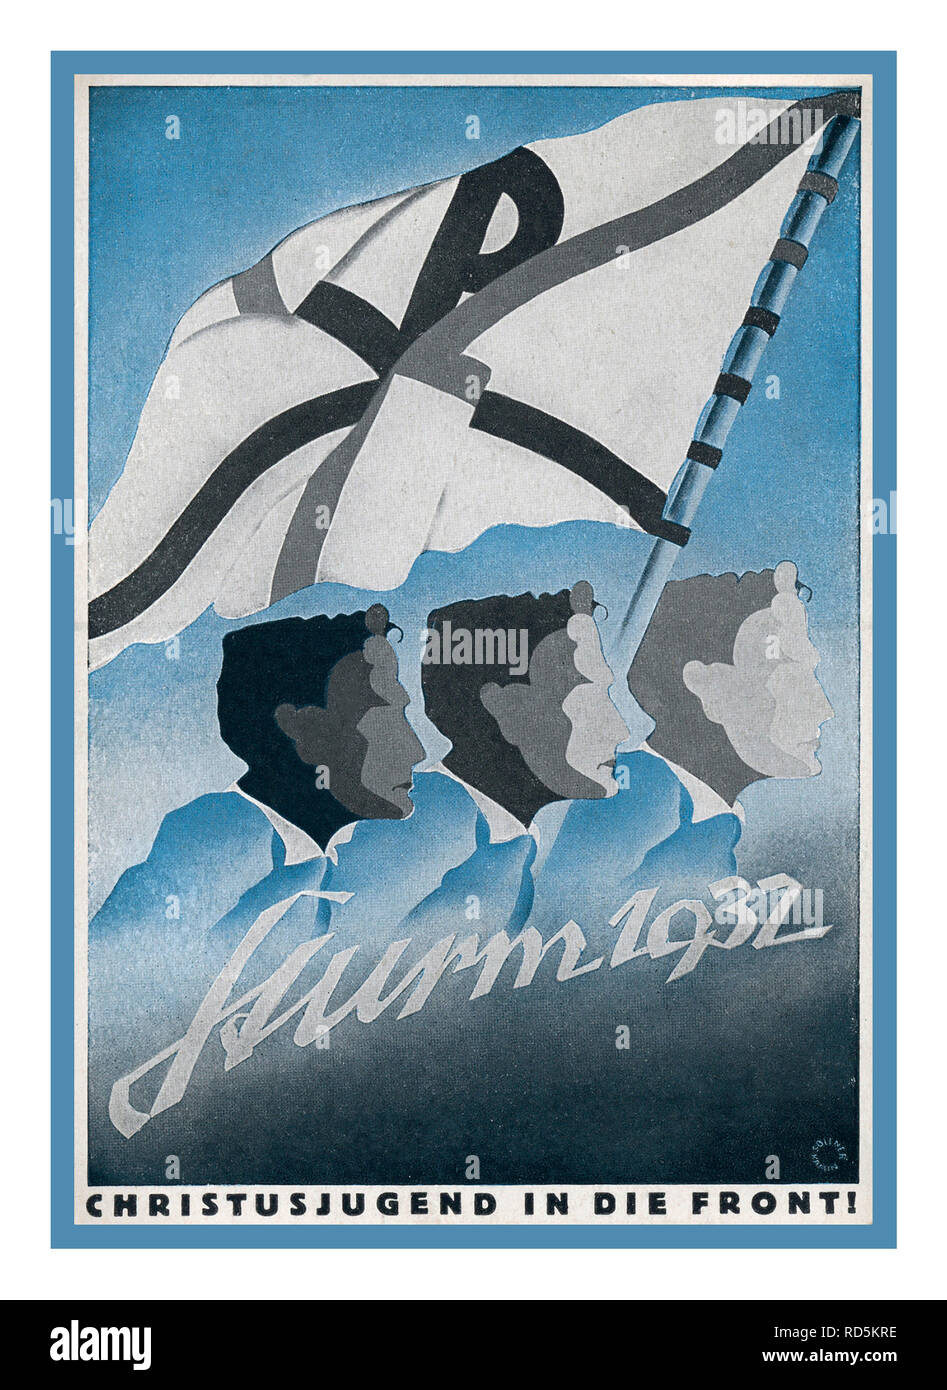 """Vintage German Reich propaganda 1932 poster 'Christian Youth at the Front of the Storm"""". A right wing German religious purist ideology with Christian youth leading at the front against a storm... - Stock Image"""